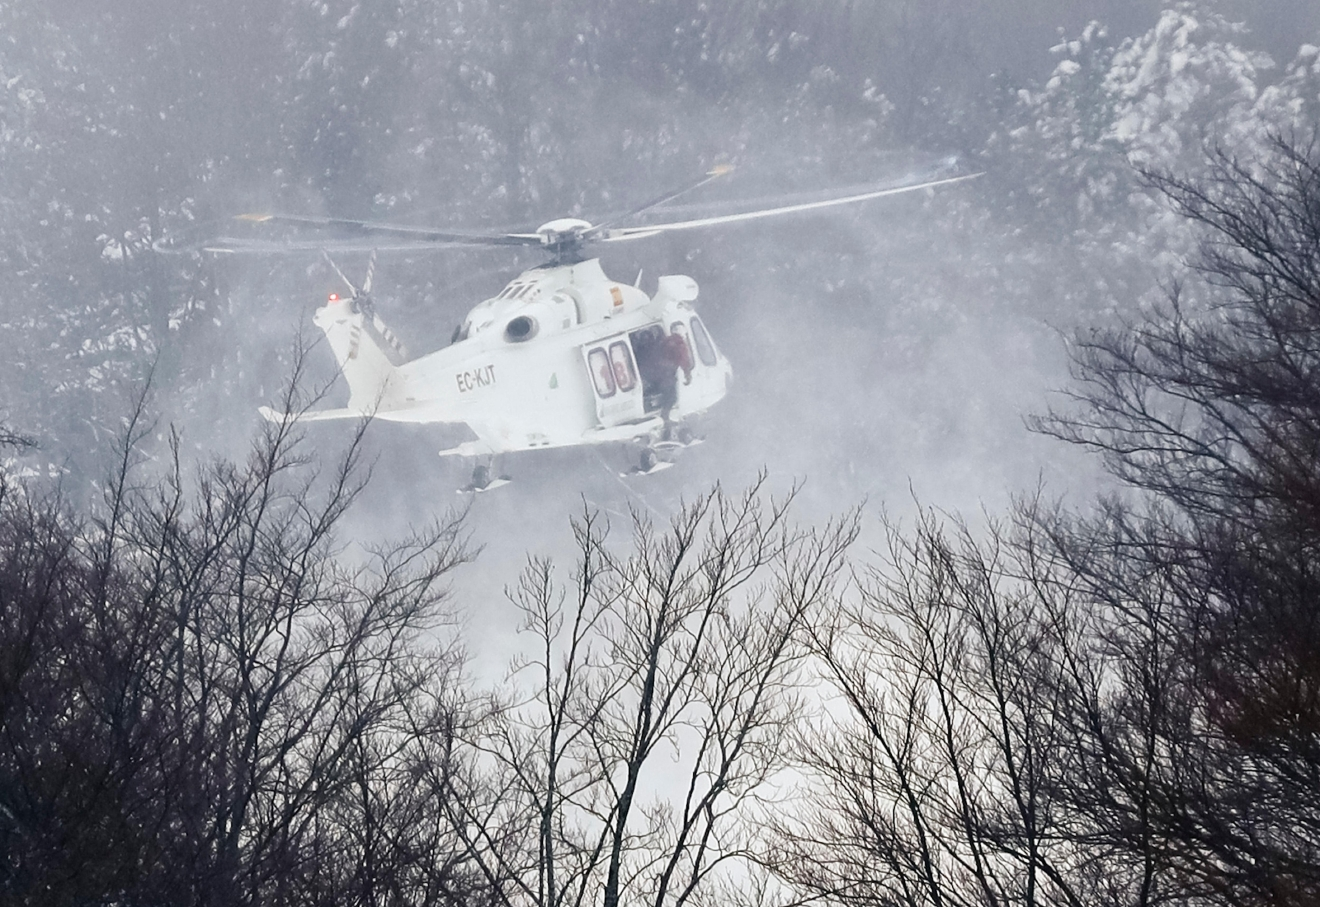 Rigopiano hotel avalanche first funerals as search goes on bbc news - A Rescue Helicopter Approaches The Area In Rigopiano Central Italy Where A Hotel Has